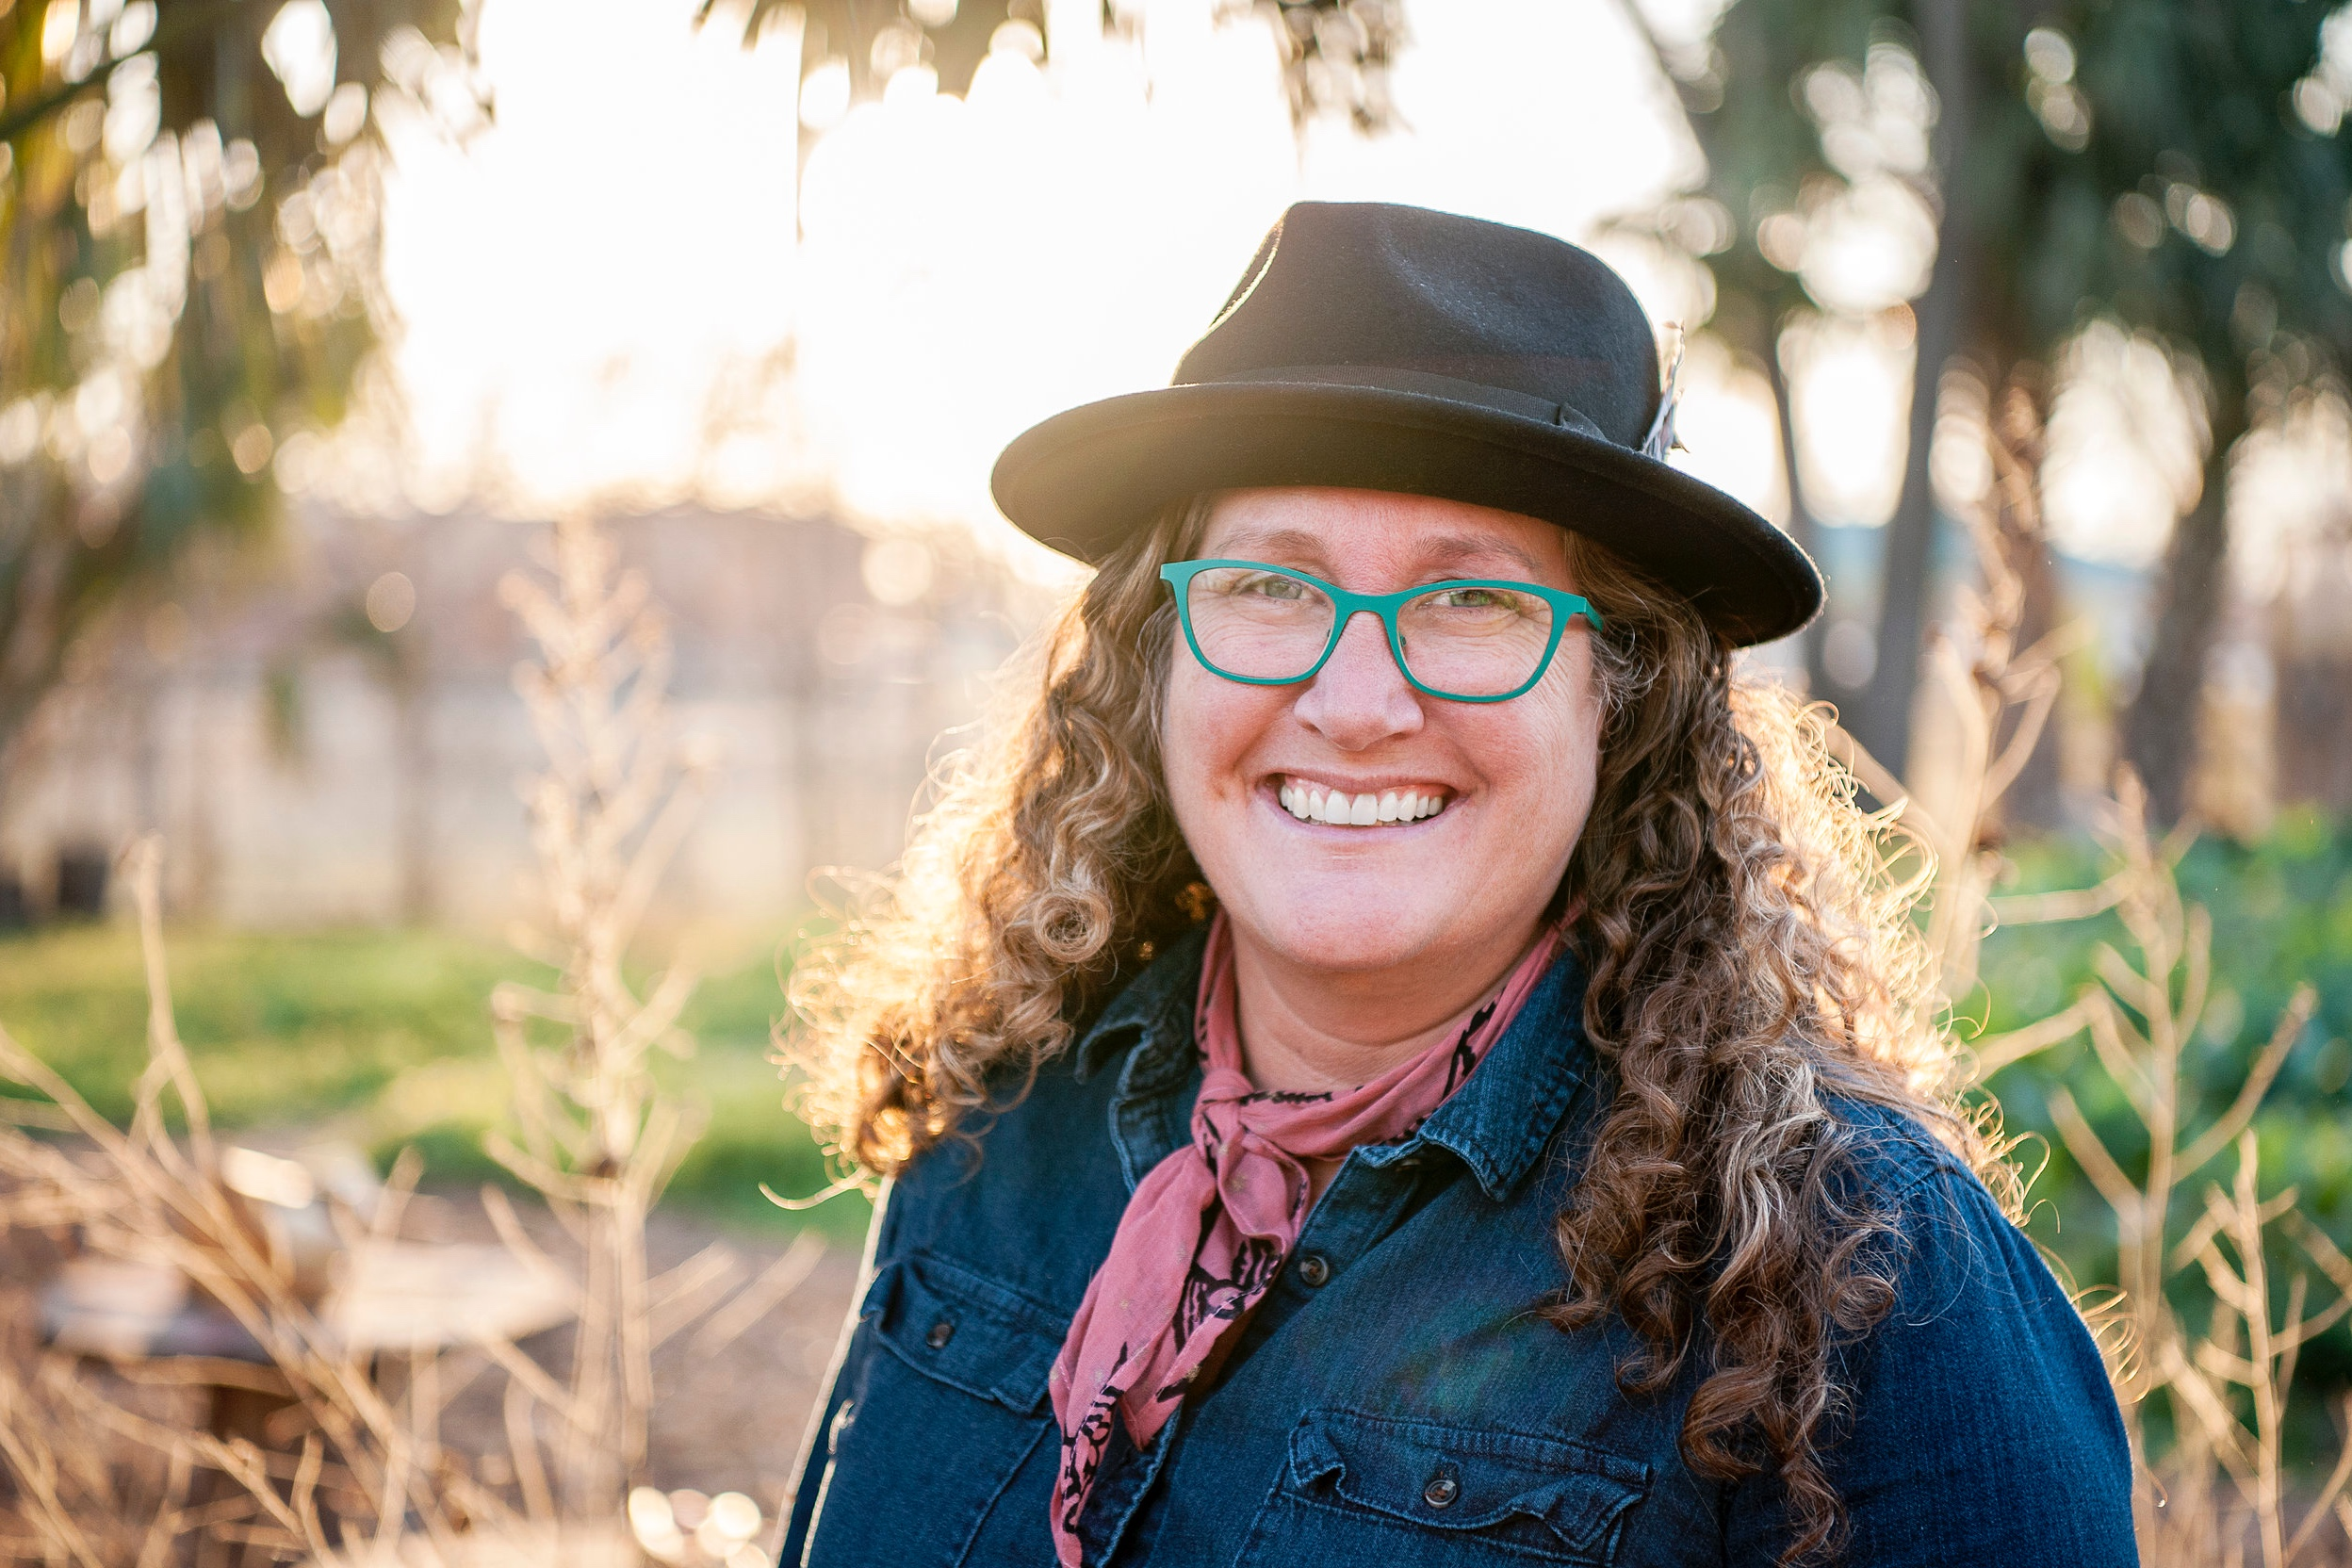 Stephanie Scherzer   Stephanie Scherzer is a passionate advocate for local food systems and a committed steward of community and land resources. An urban farmer for over two decades, she founded Farmhouse Delivery in 2009 to connect consumers with sustainably-raised local produce and grow the market for goods from local producers. Over the decade since its founding, Farmhouse Delivery has created deep ties with over 180 unique farmers/ranchers/artisan food purveyors, employed over 75 community members at fair-wage salaries, and purchased over 500 tons of locally-raised produce, meat, and artisanal food produc annually. As she forged new distribution systems for local food, she also helped implement experimental agricultural projects to benefit local communities, including a pomegranate farm in West Texas and a humane pig farm. In 2018, she joined the staff of Lettuce Grow, a direct-to-consumer hydroponic growing system with a mission to allow everyone to grow their own healthy food at home. In addition to her career experience in horticulture and small-scale urban farming, she is a co-founder of the East Austin Urban Farm Tour, which has raised over 100k for the Farm and Ranch Freedom Alliance, and has served on the board of Urban Roots and is a member of the Growers' Alliance of Central Texas.